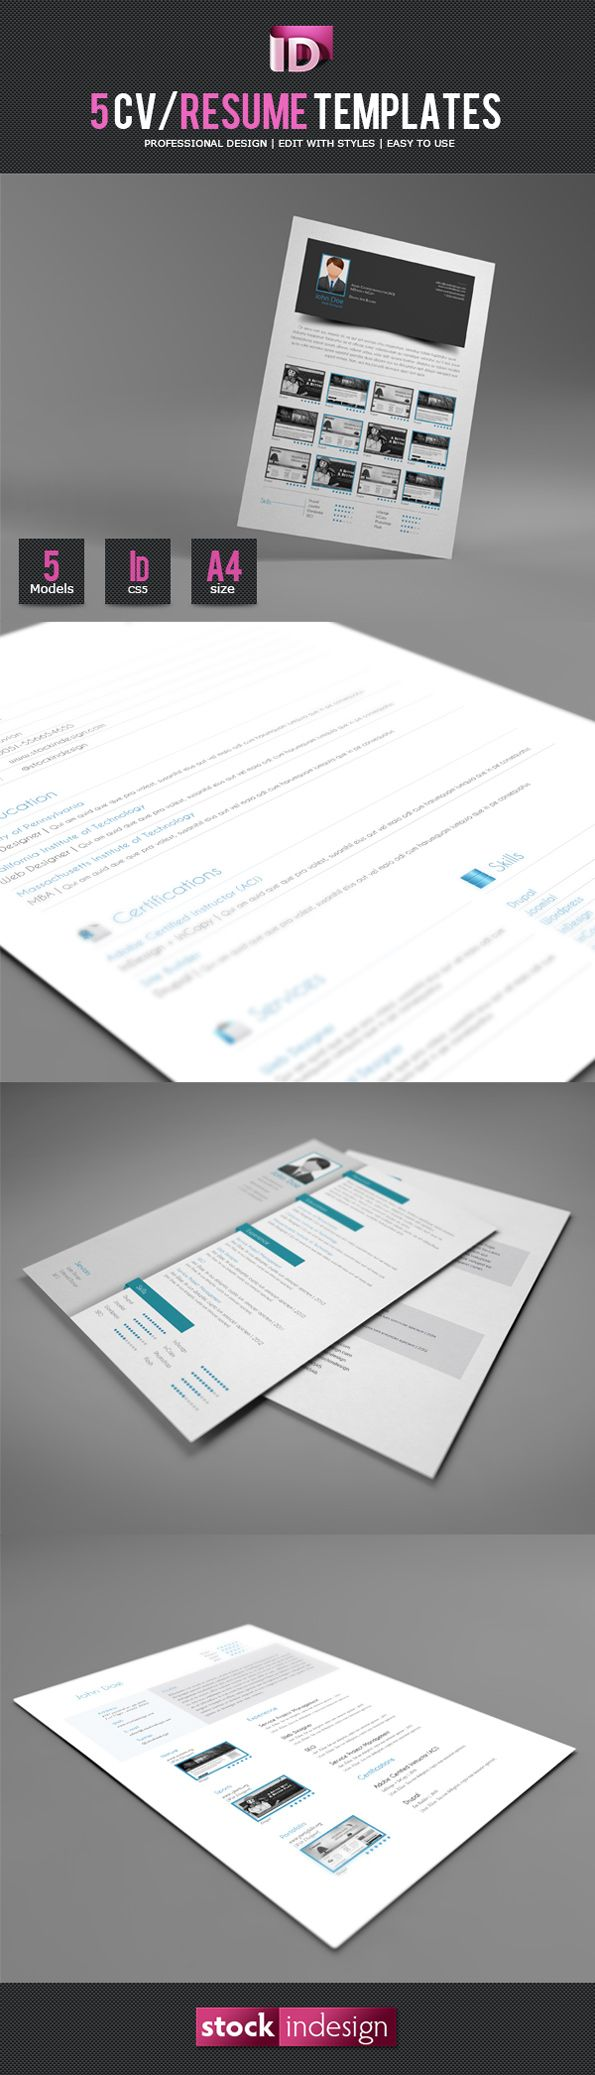 47 Best Indesign Templates Images On Pinterest Photoshop